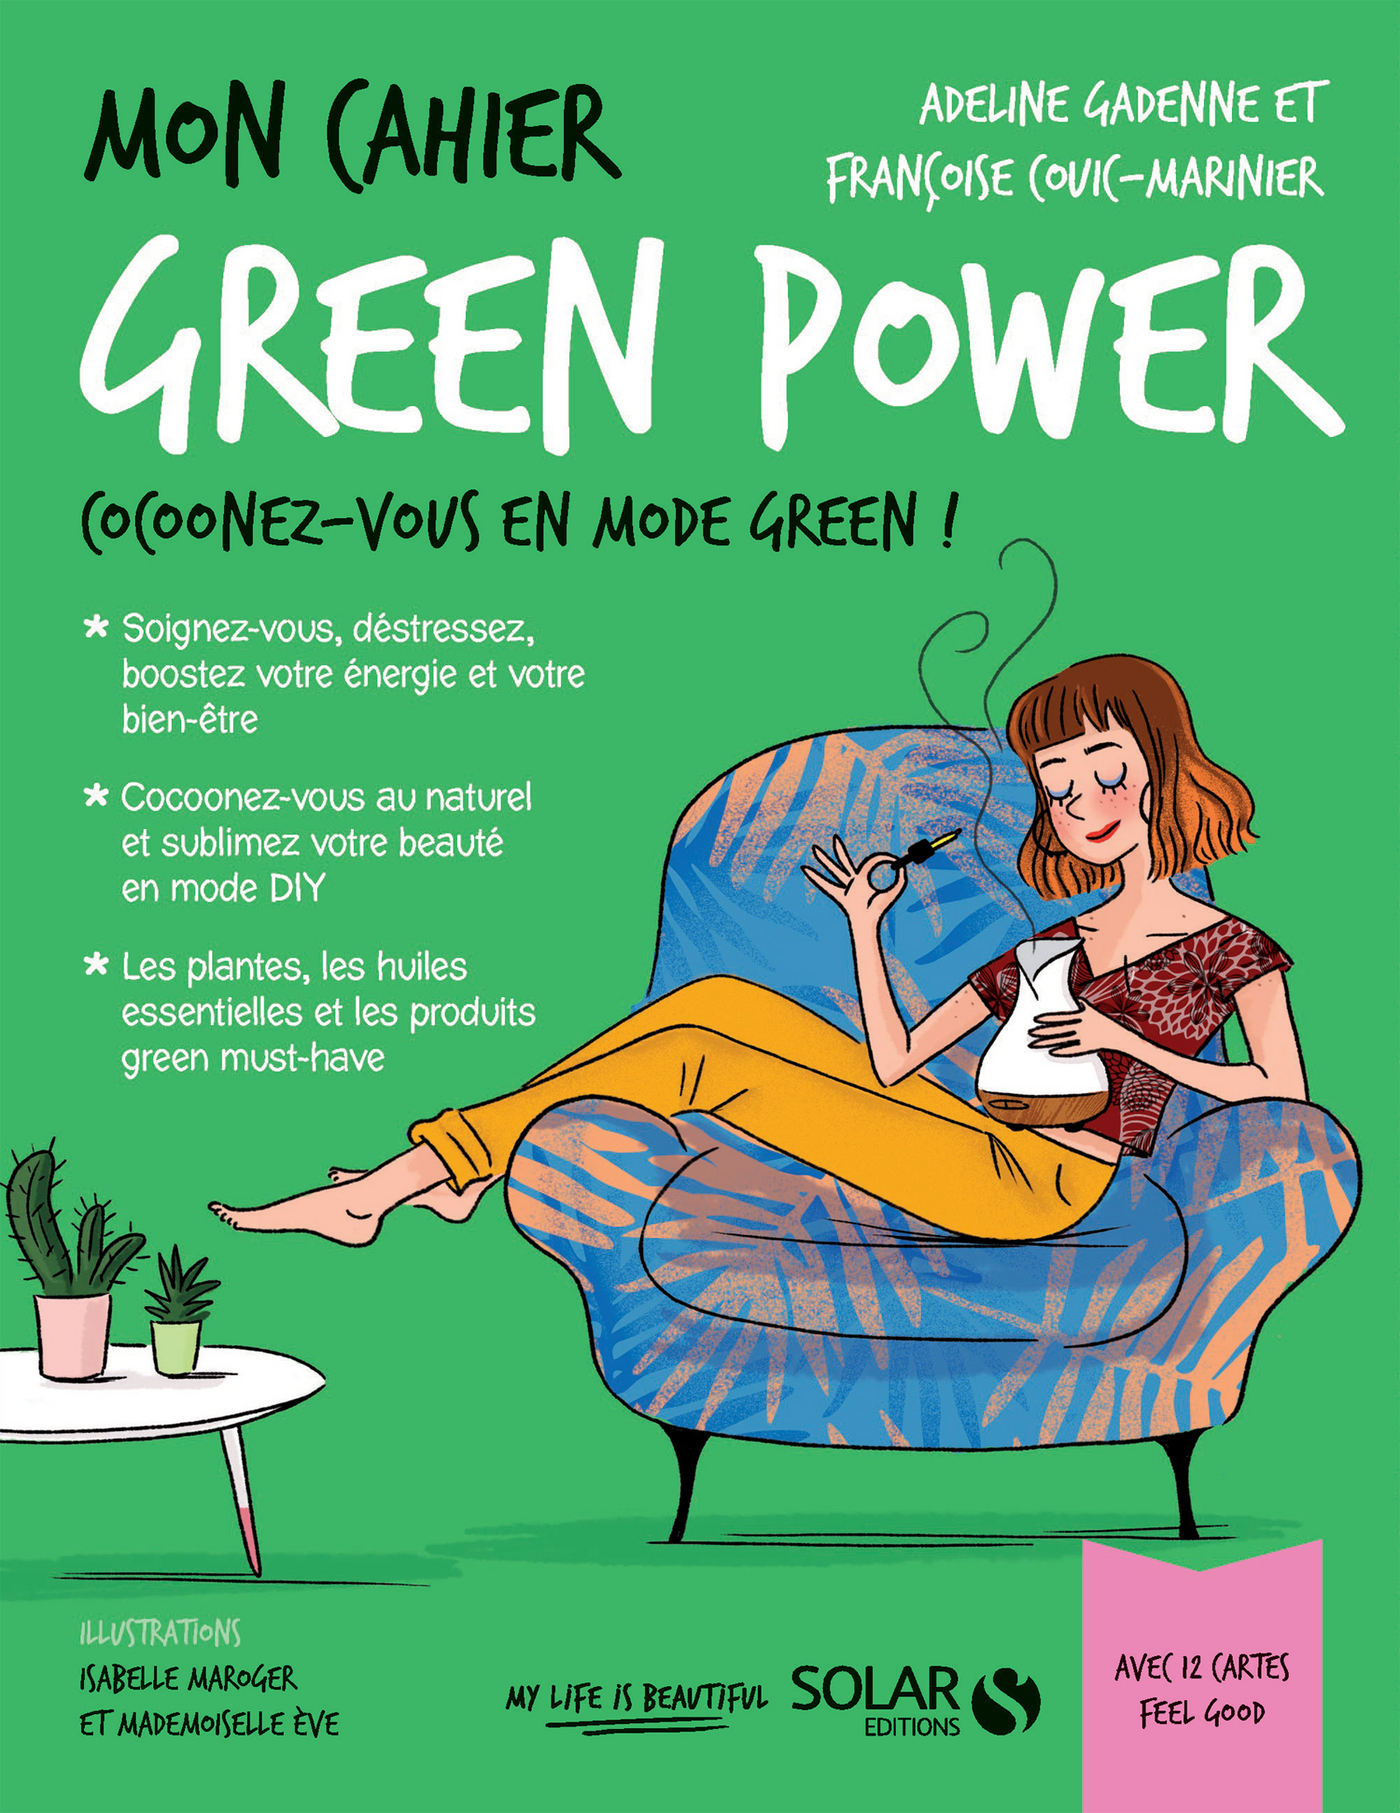 Mon cahier Green power